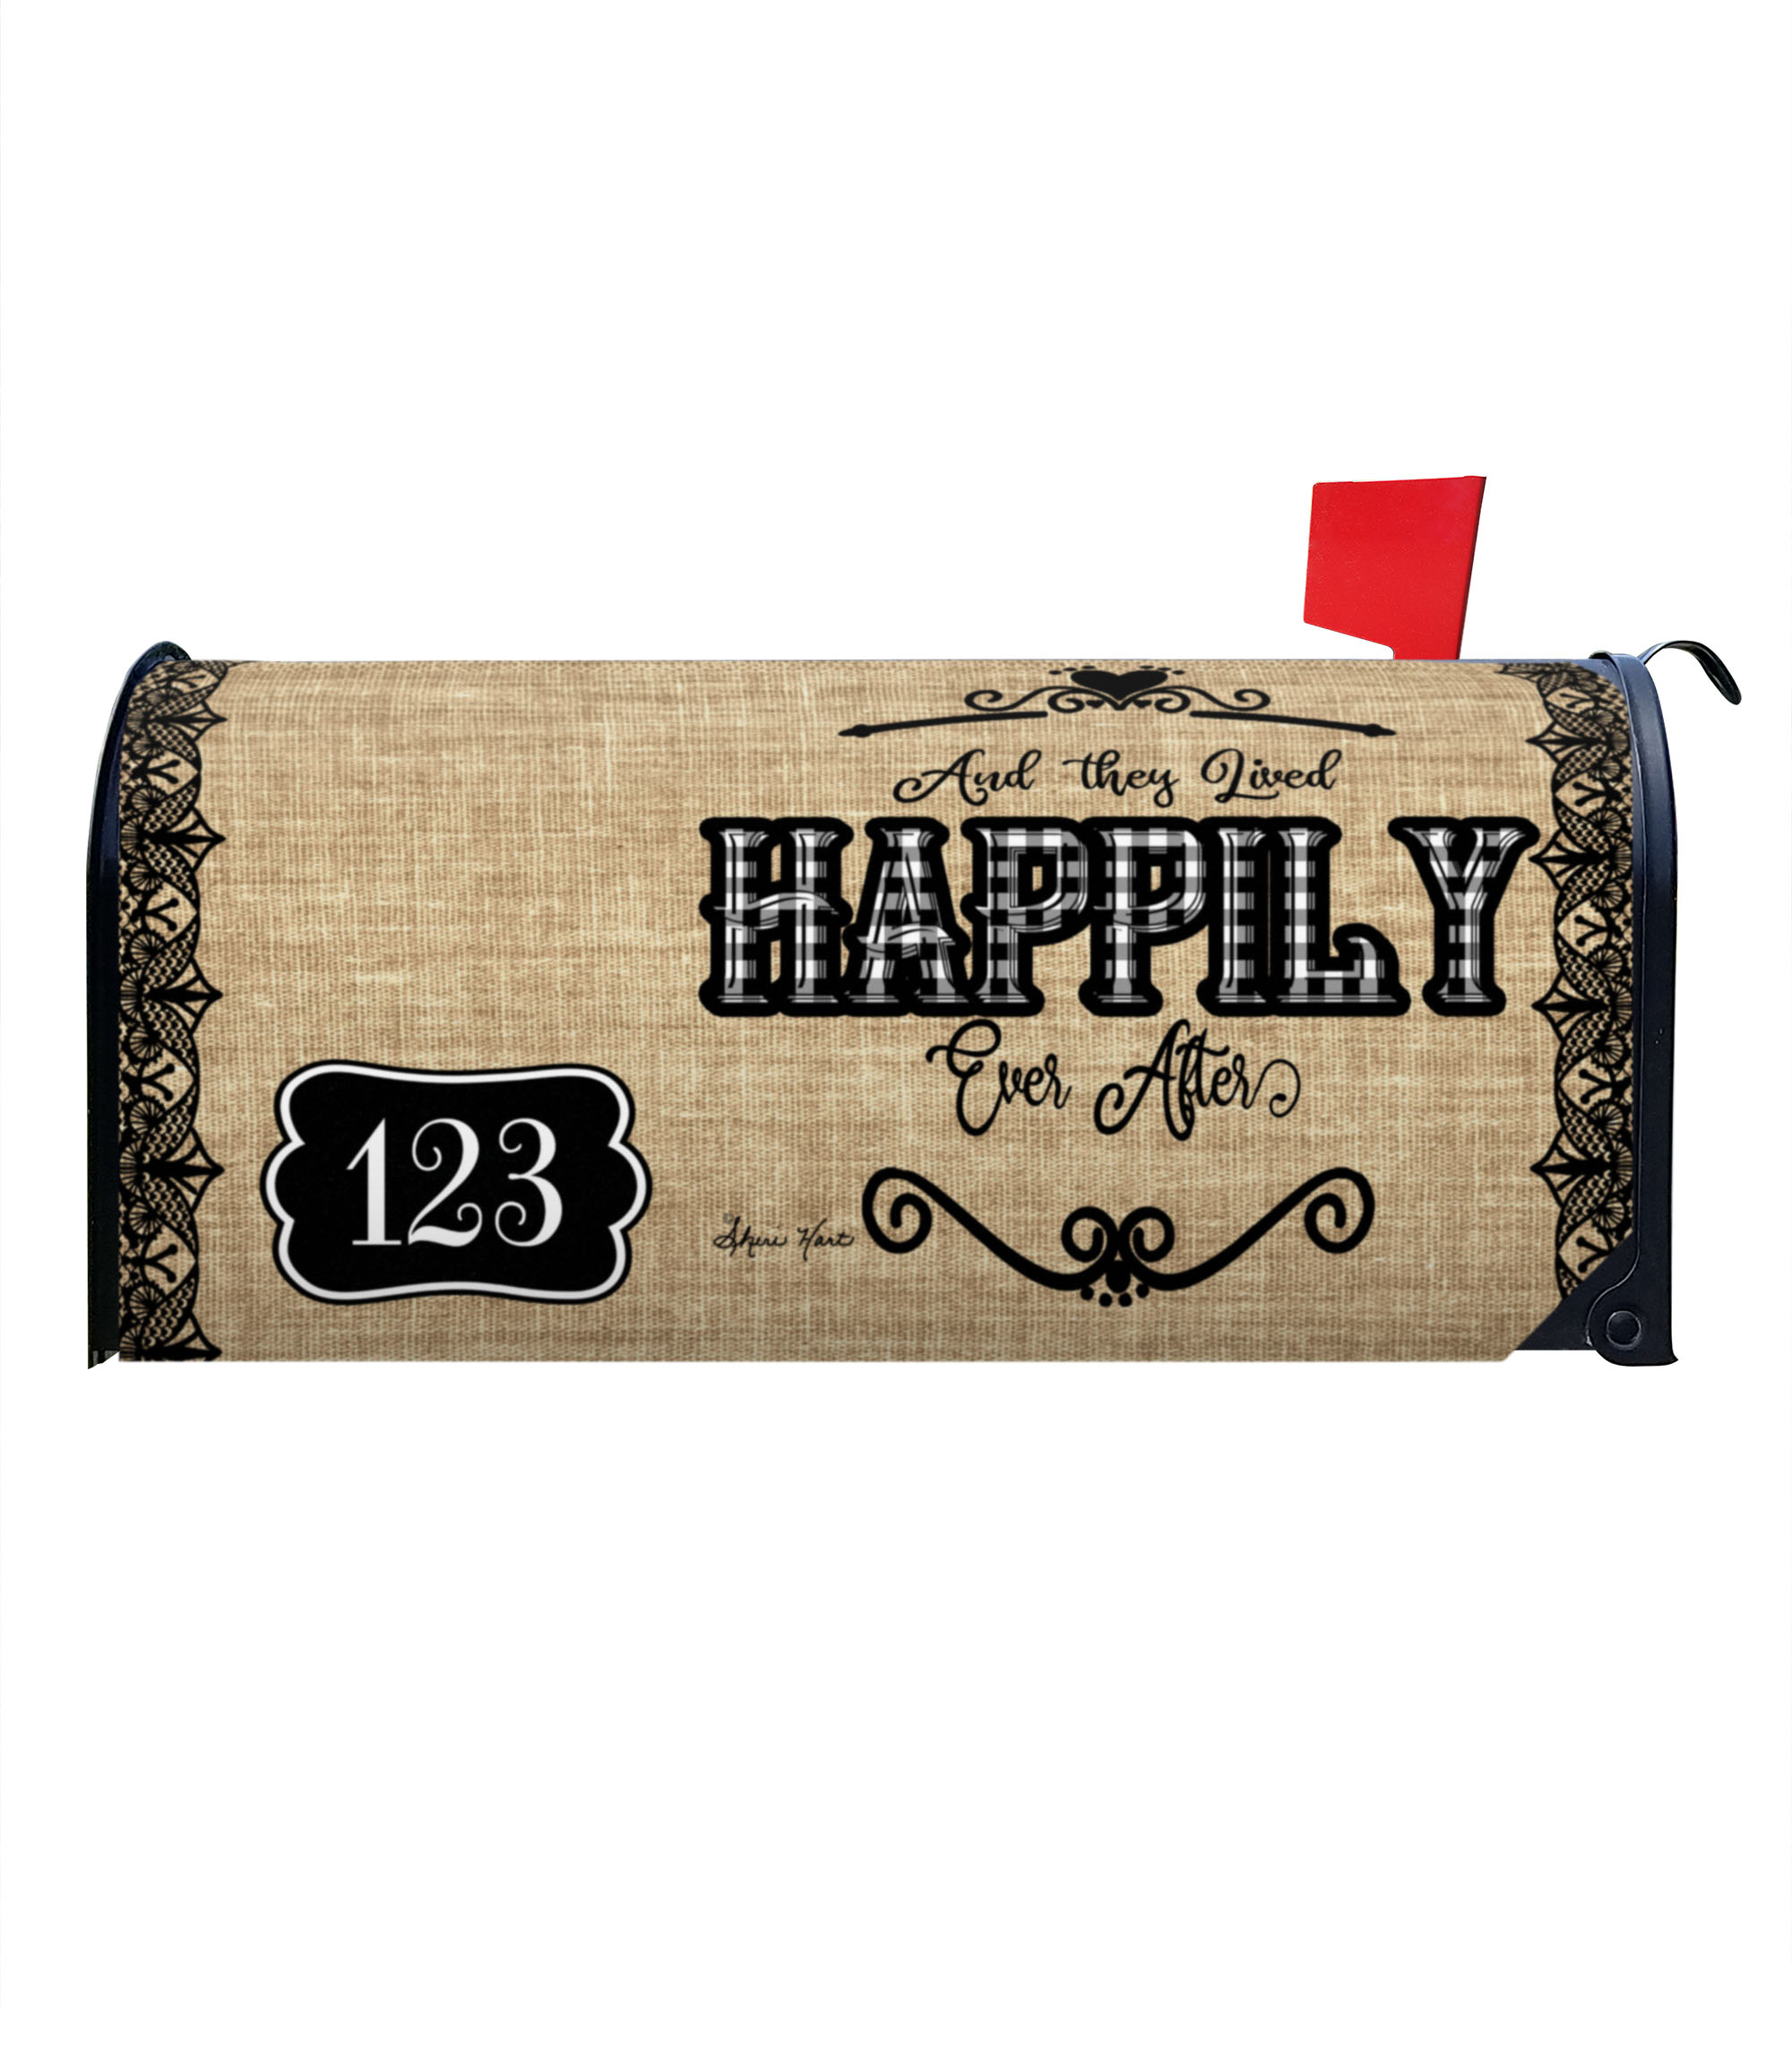 Happily Ever After Burlap Magnetic Mailbox Cover 6 5 W X 8 5 H X 19 L Custom Printed Flags Flagology Com